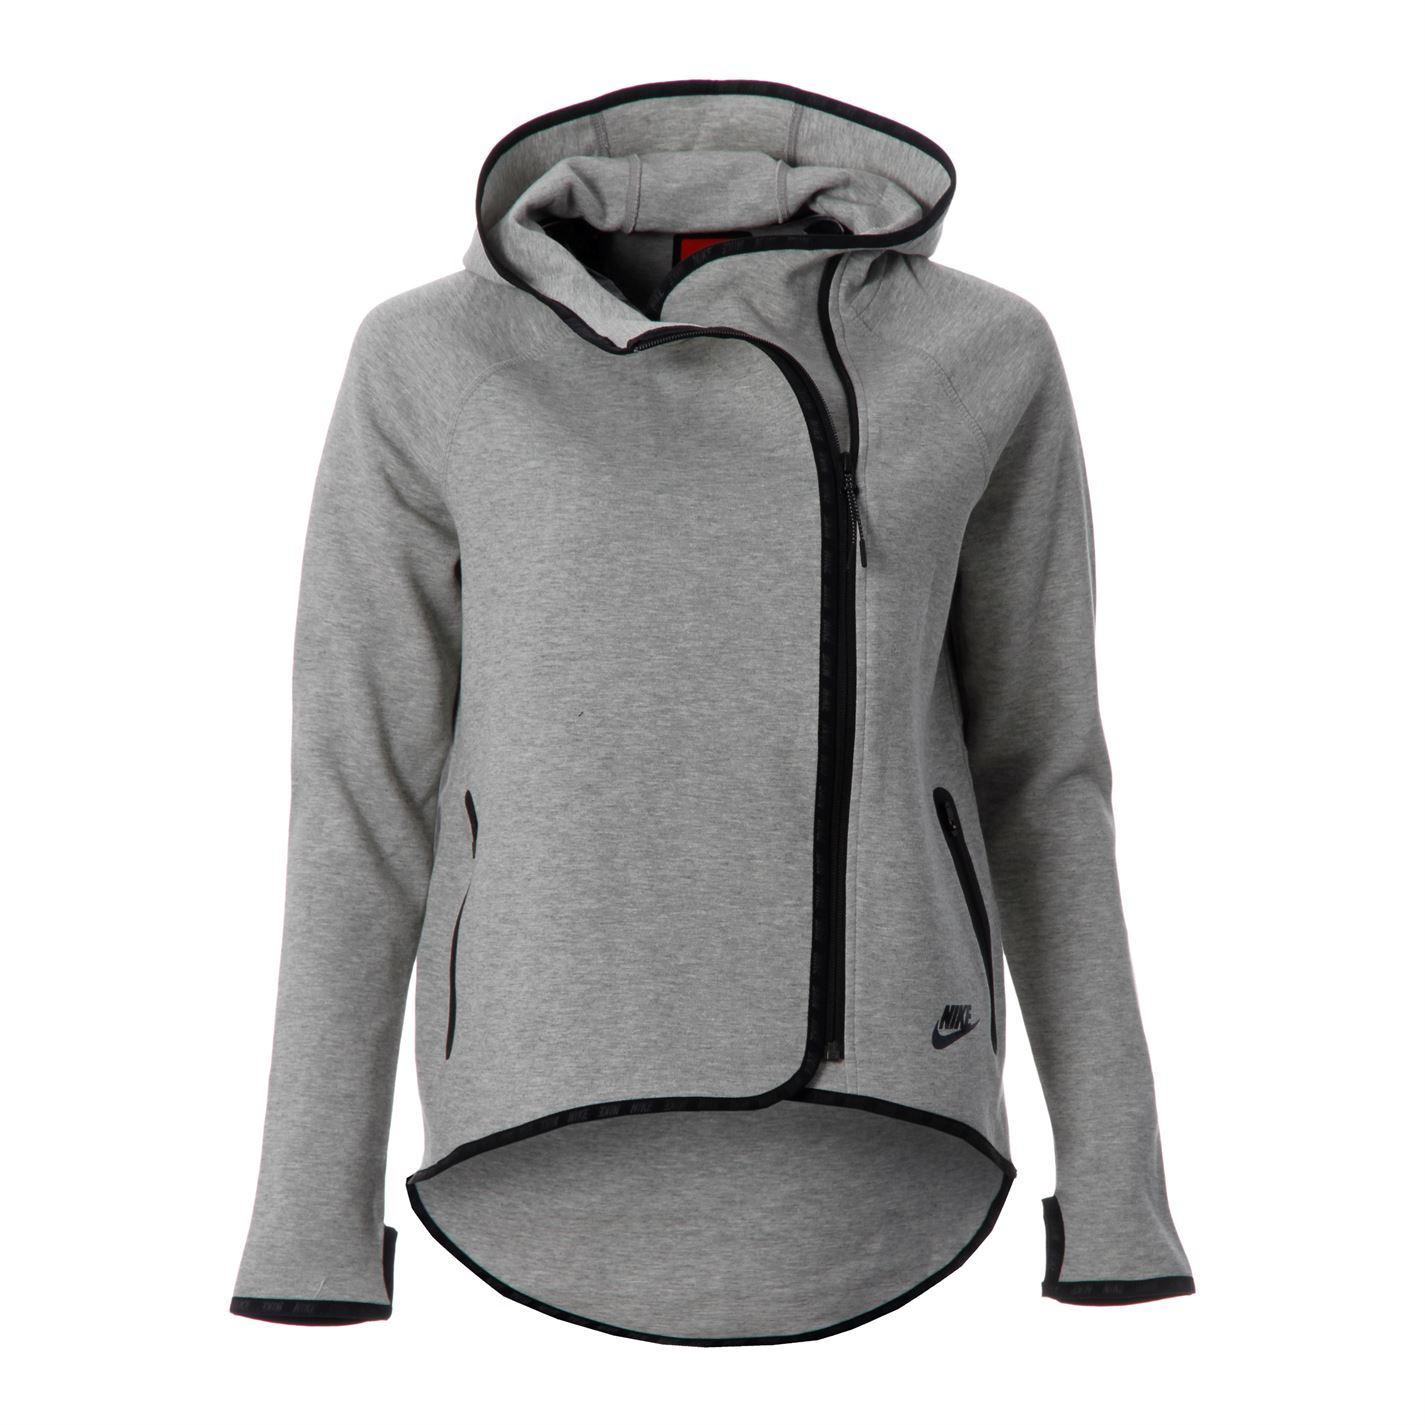 Nike Womens Ladies Tec Fleece Cape Side Zipper Long Sleeve Hooded ...